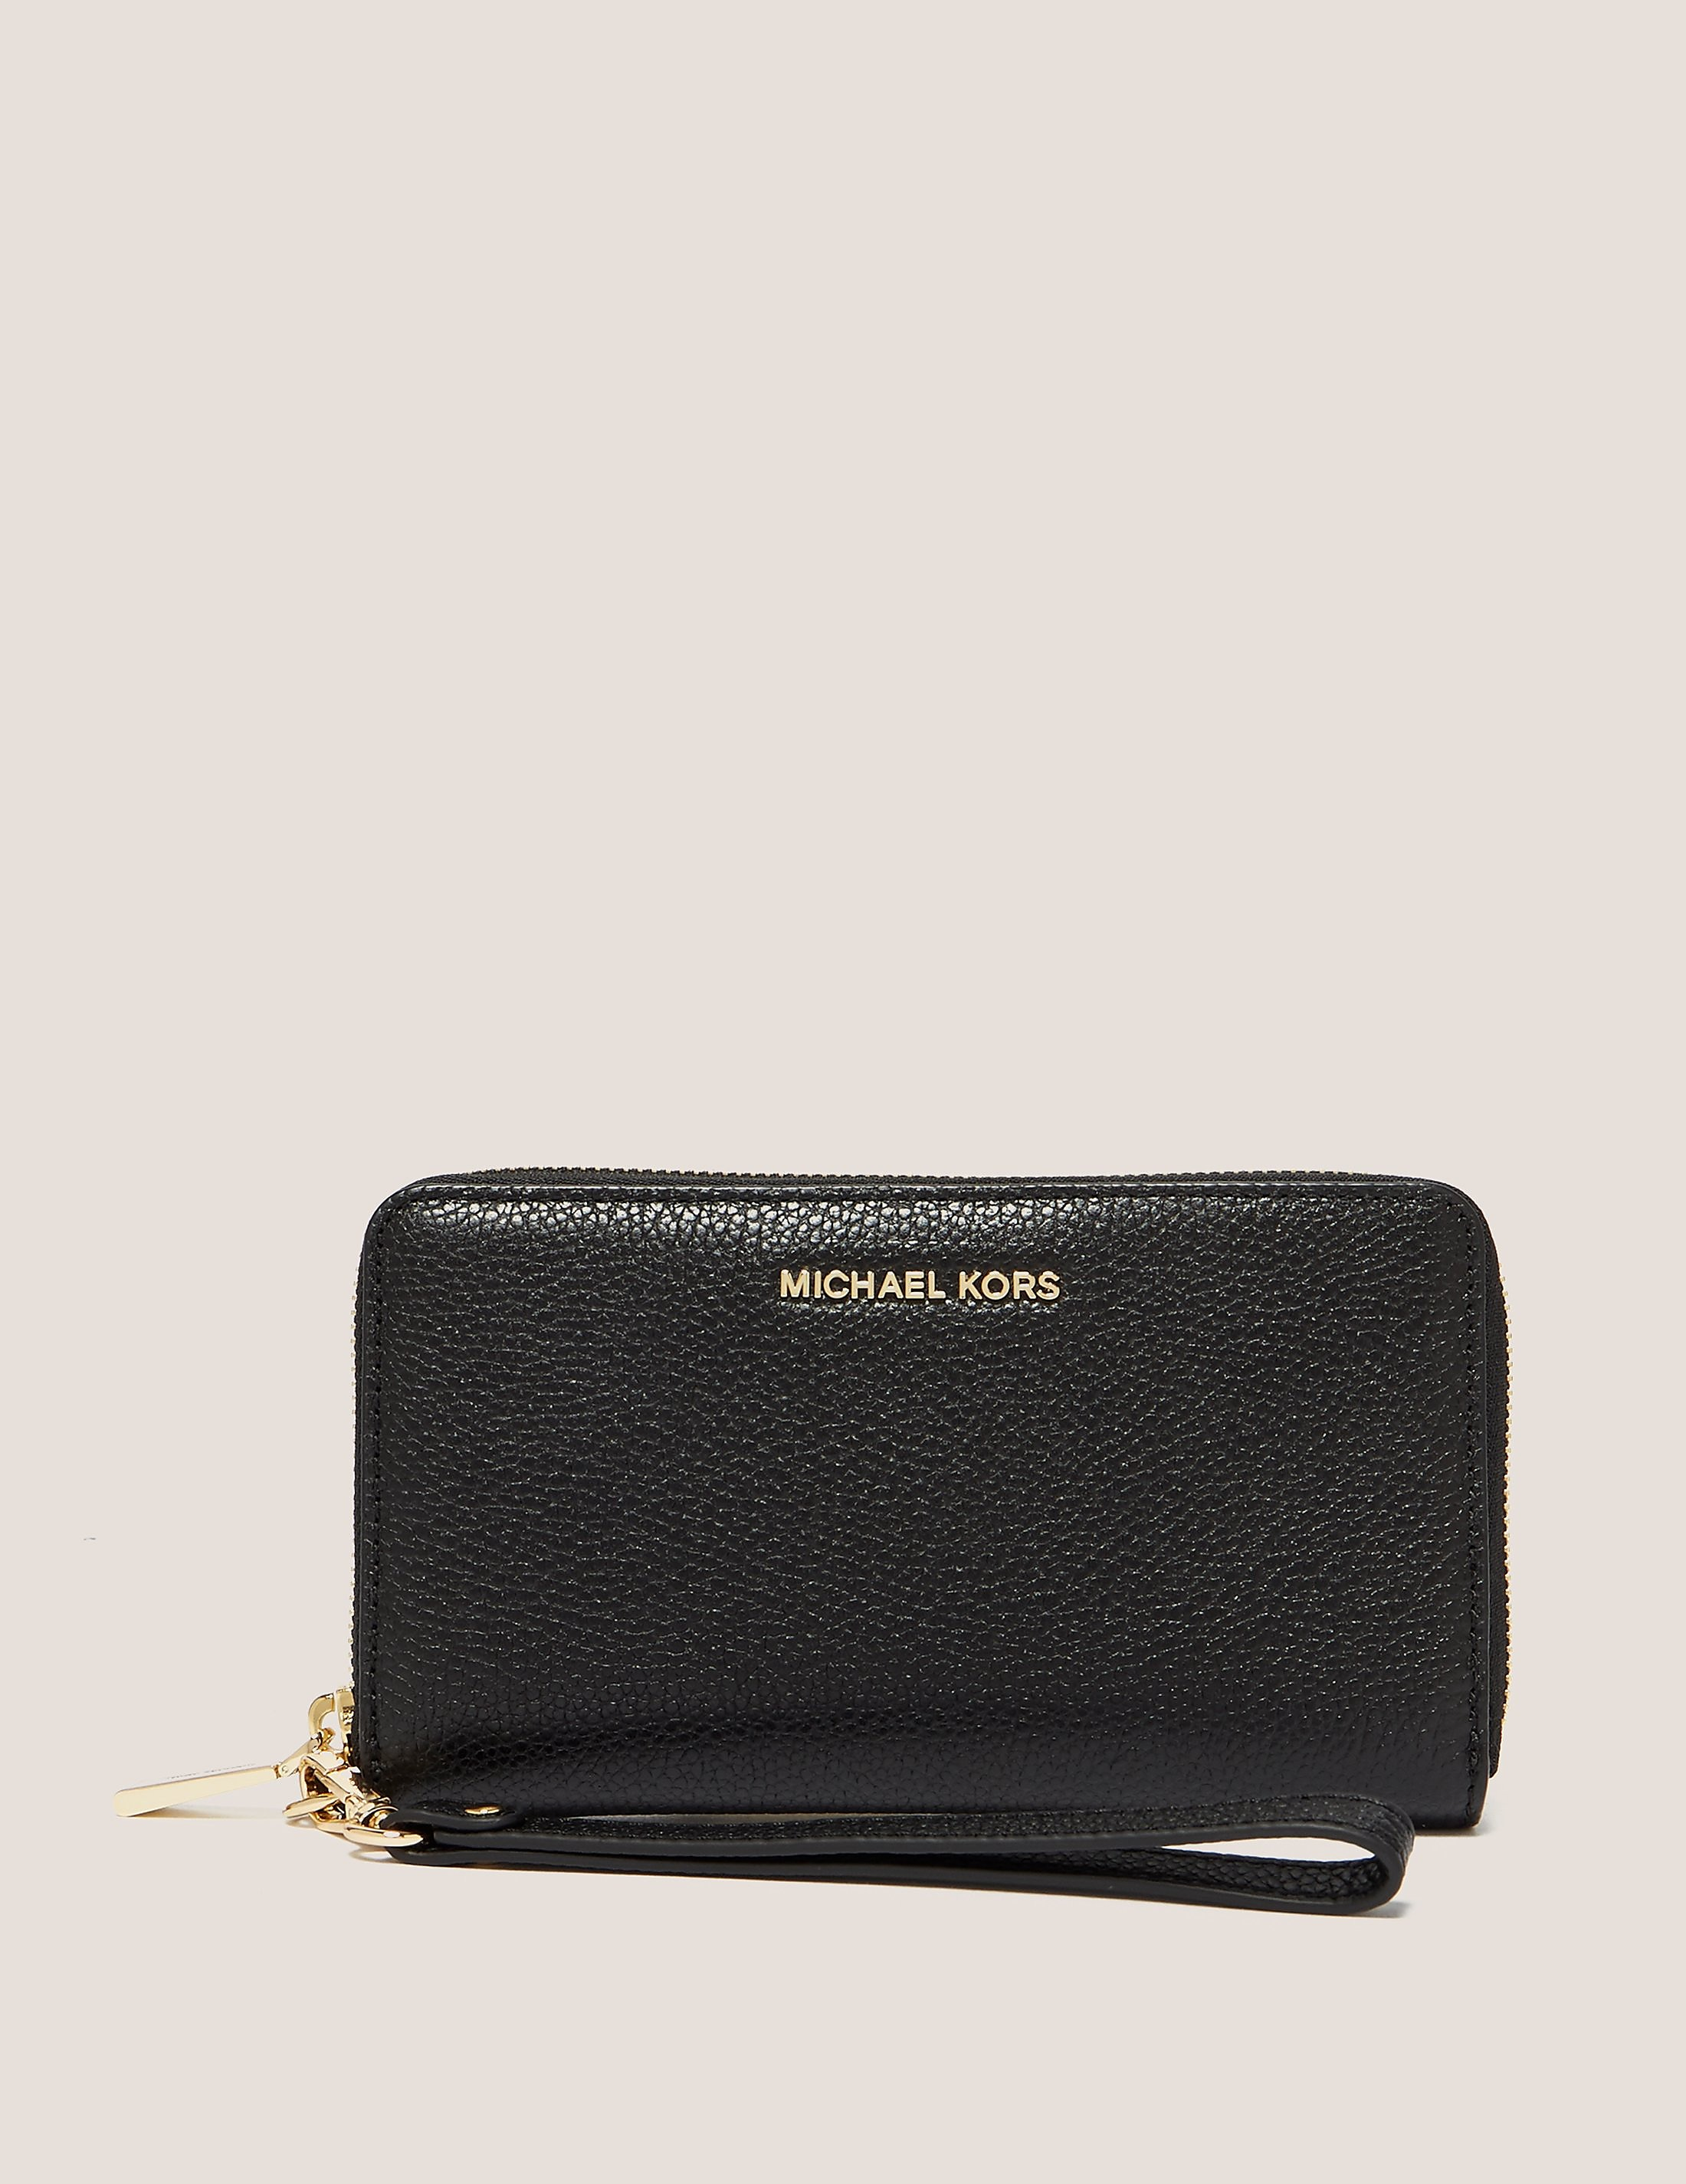 Michael Kors Mercer Phonecase